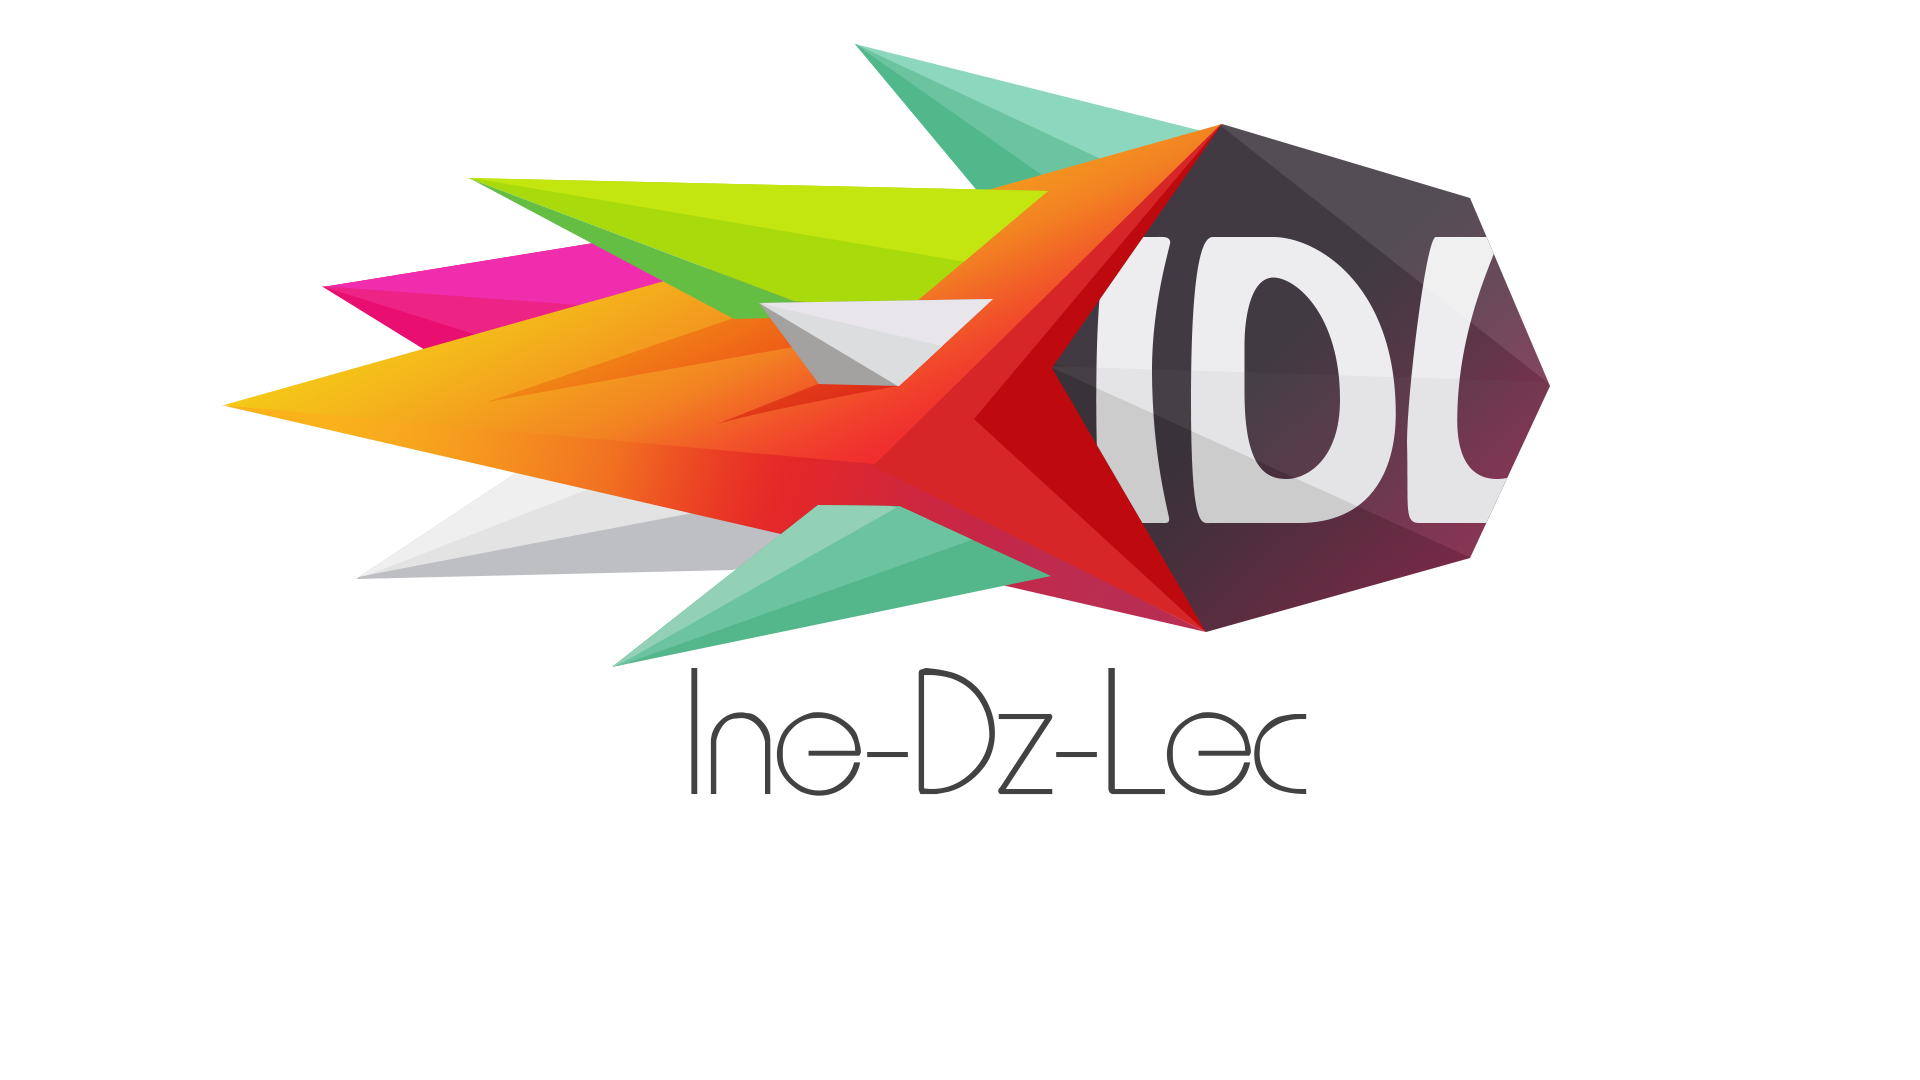 Lec Png - ine-dz-lec : Free Download, Borrow, and Streaming : Internet Archive